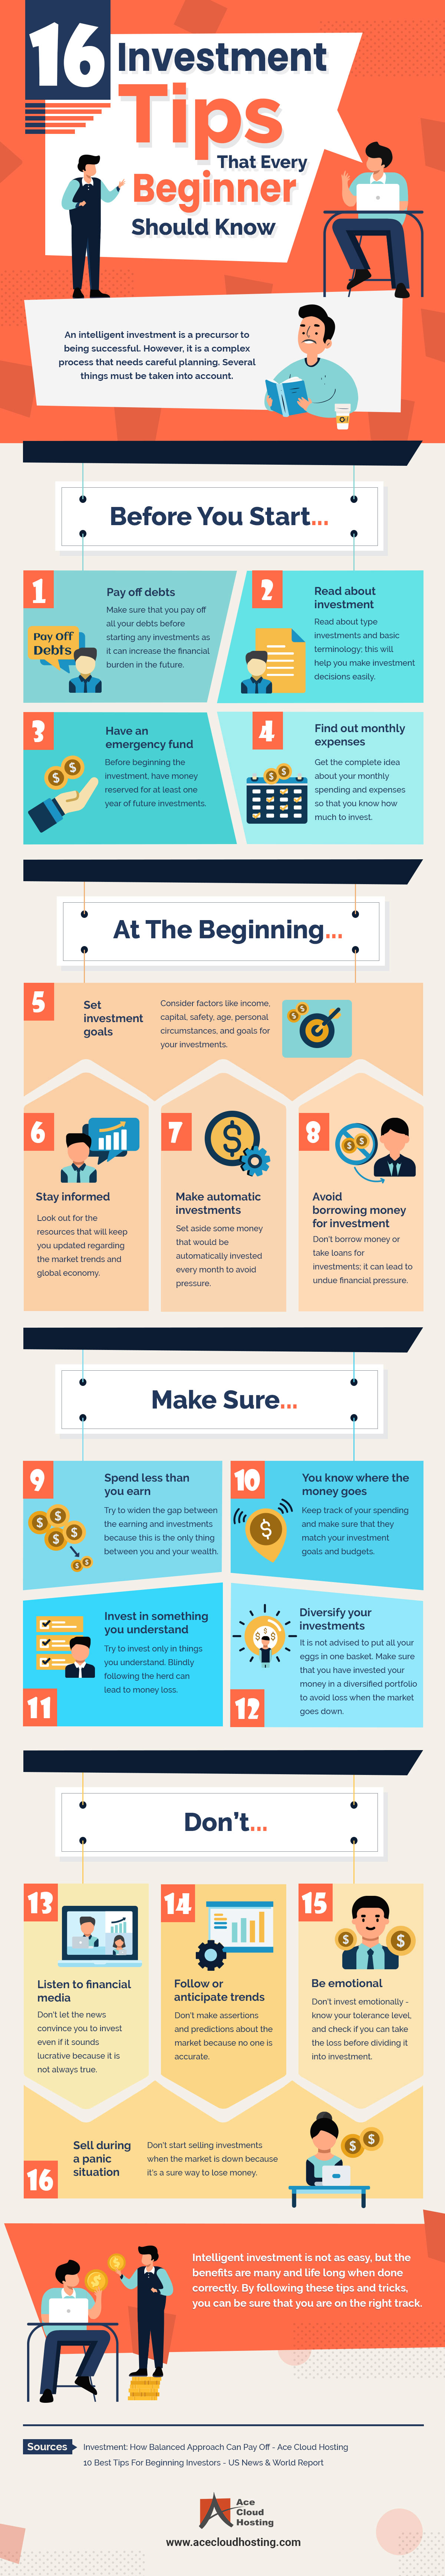 16 Investment Tips That Every Beginner Should Know [Infographic]